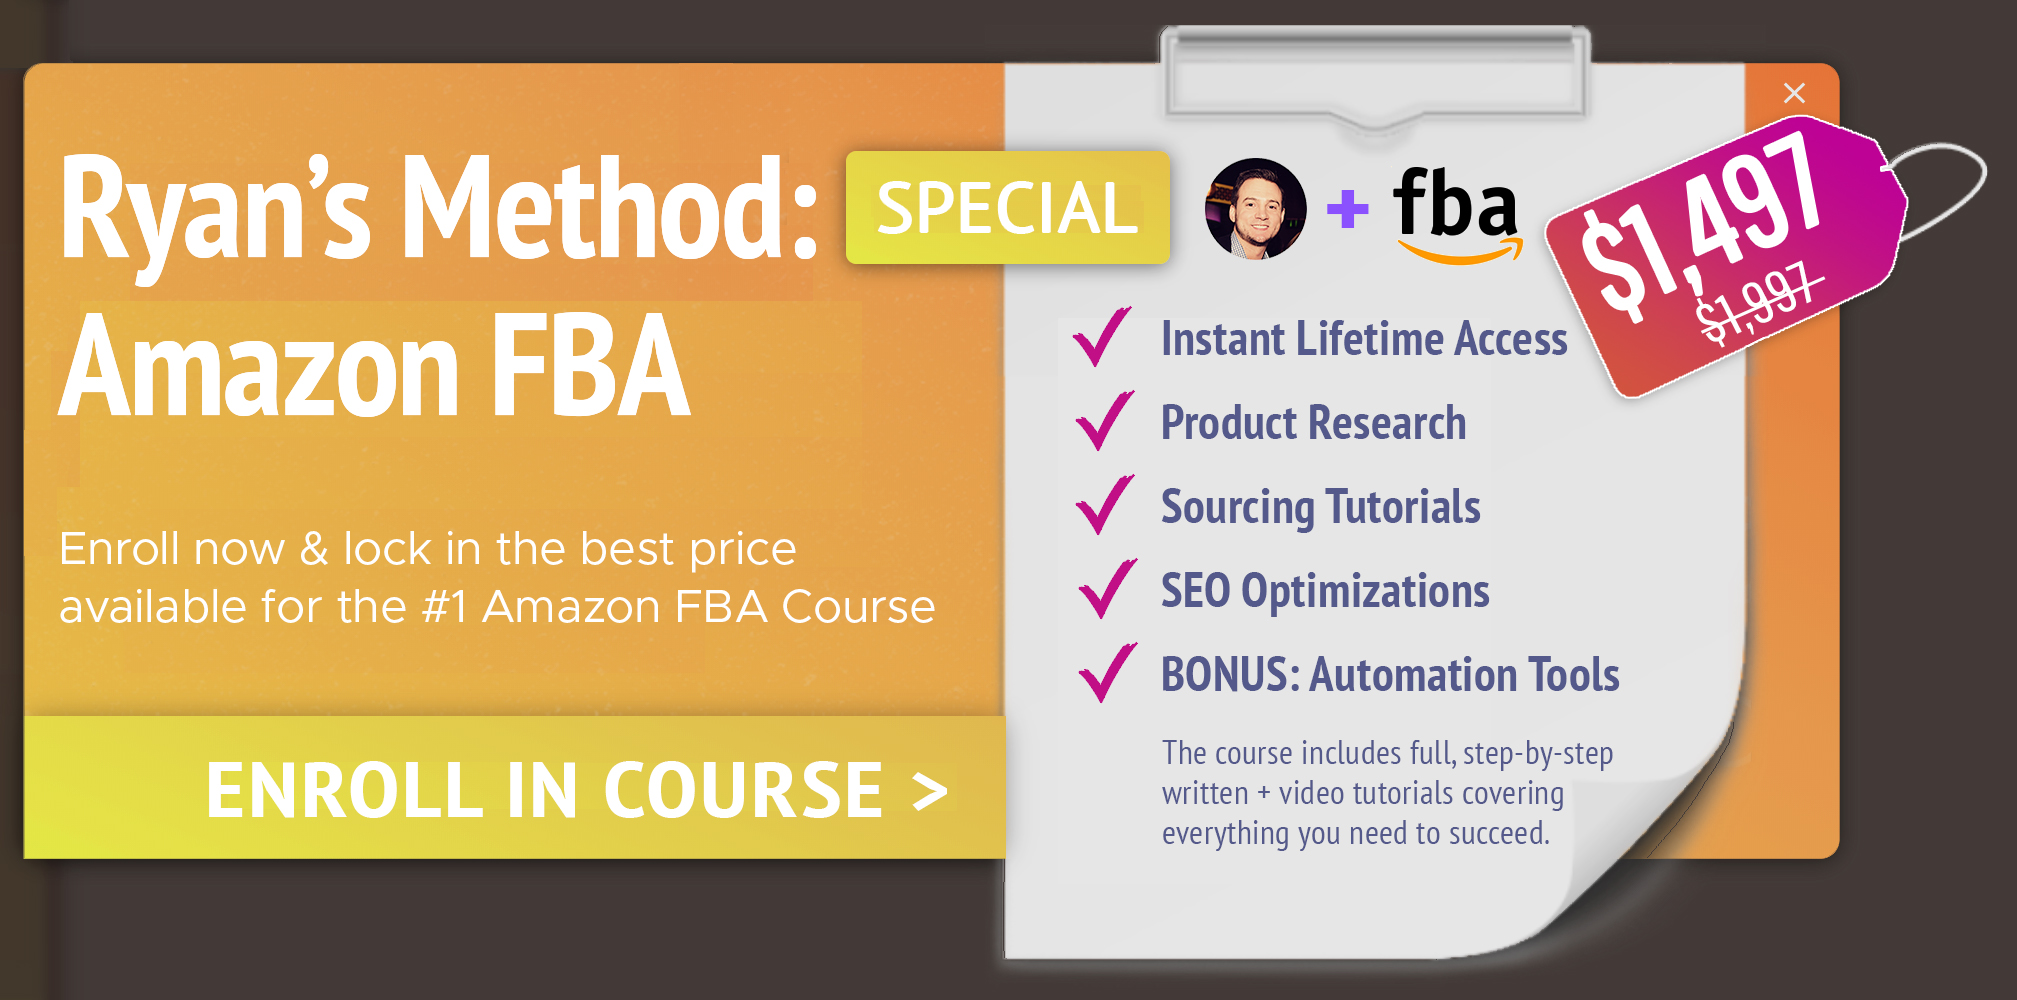 Enroll in Ryans Method: Amazon FBA